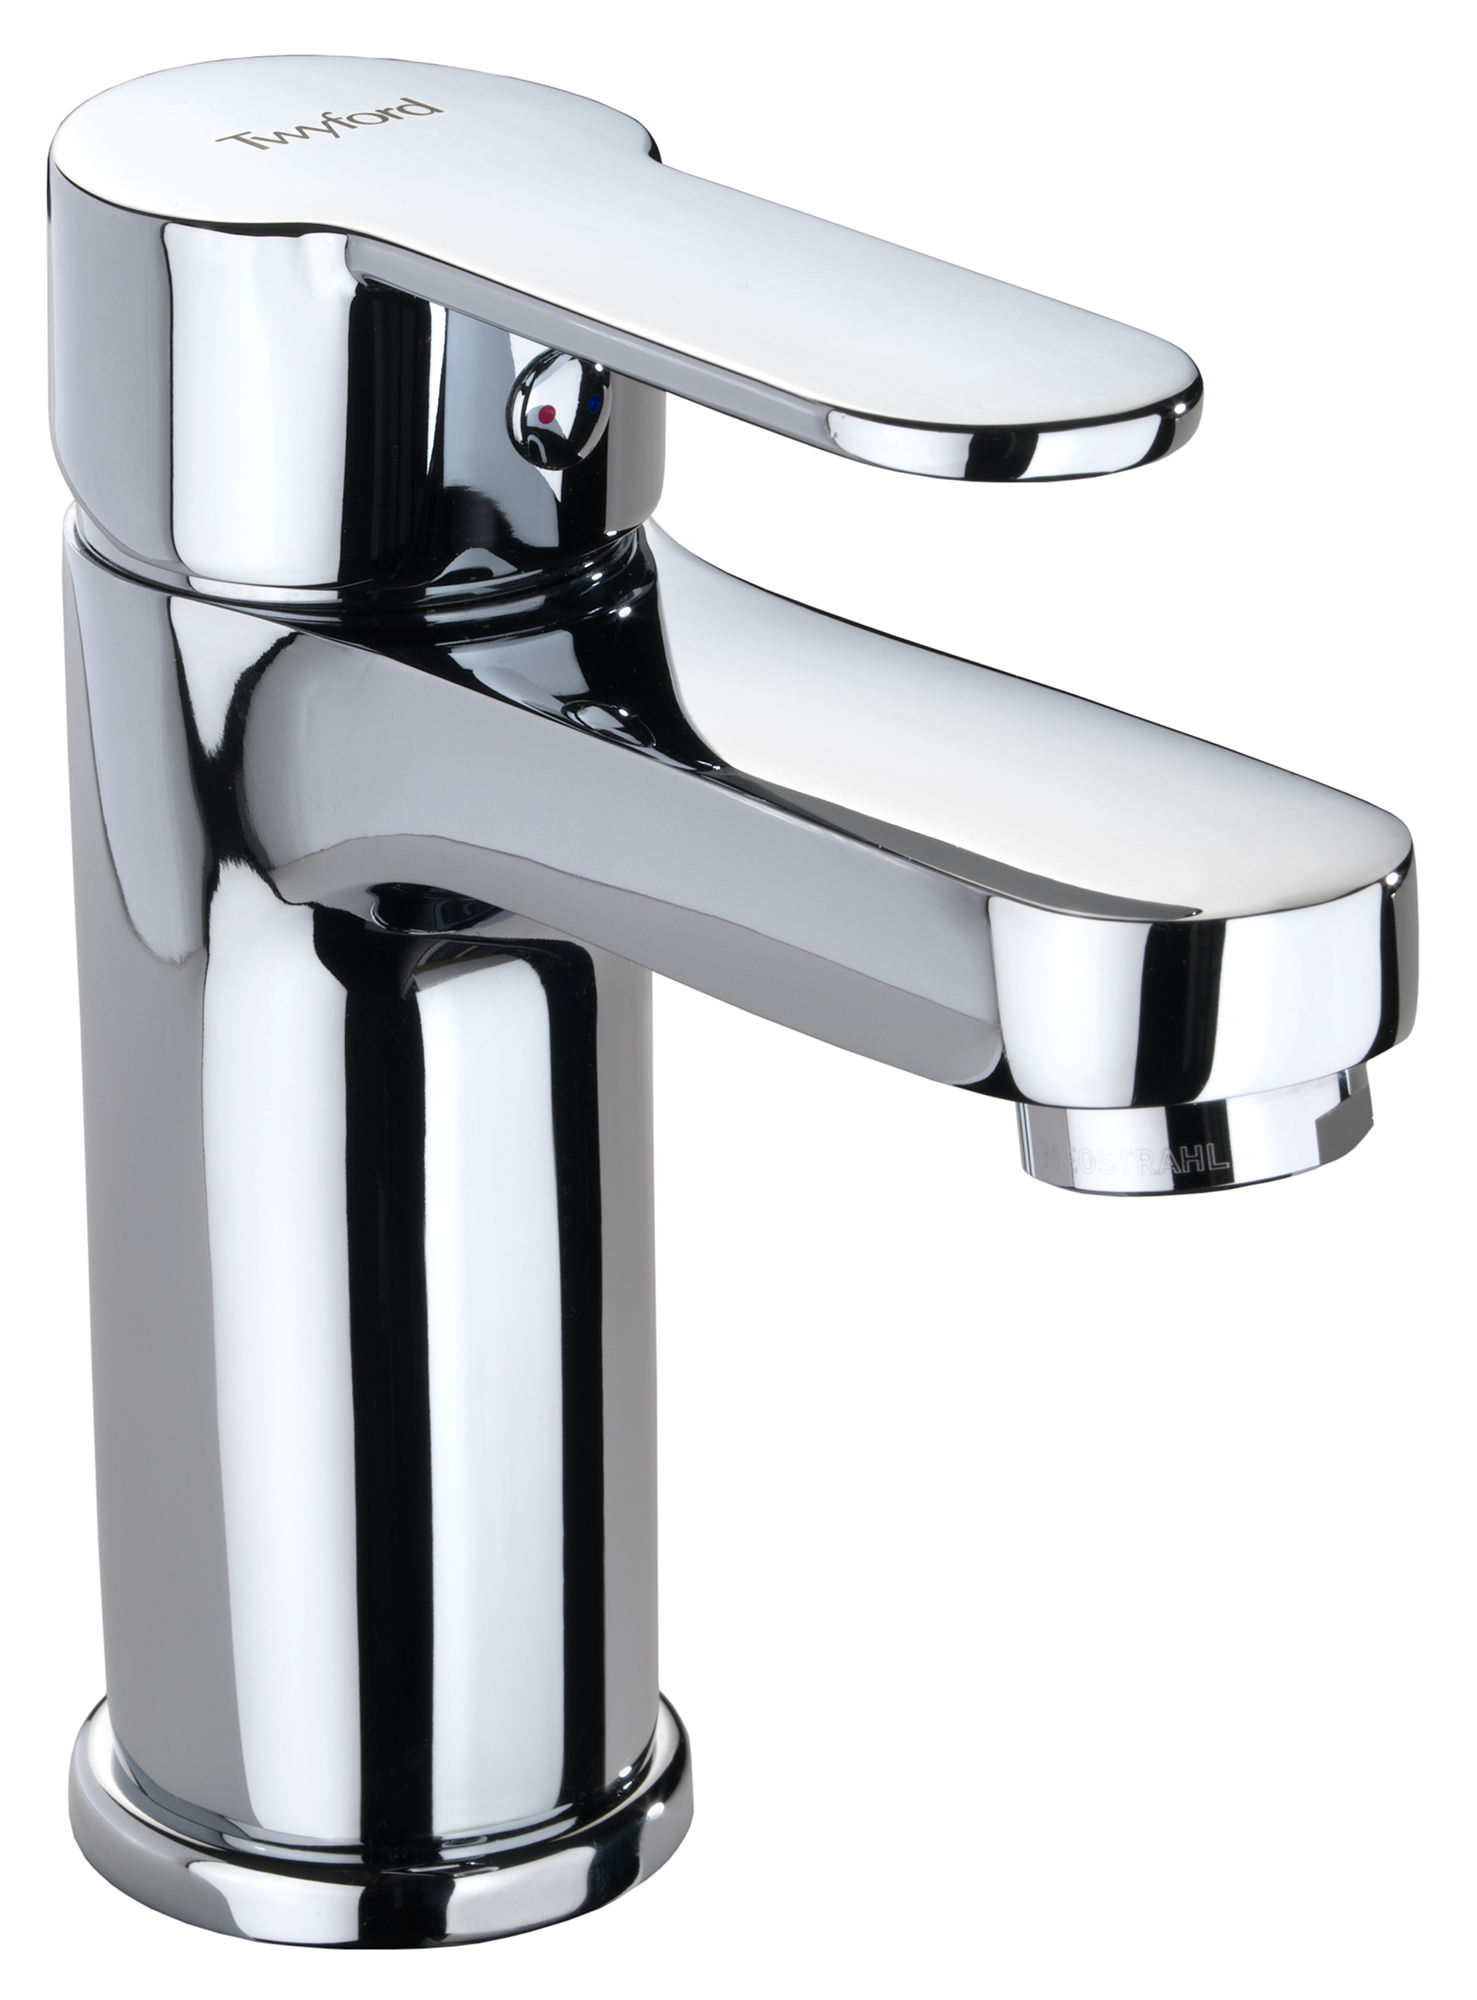 Best bathroom mixer taps - Twyford X50 Mono Mini Basin Mixer Tap With Click Clack Waste